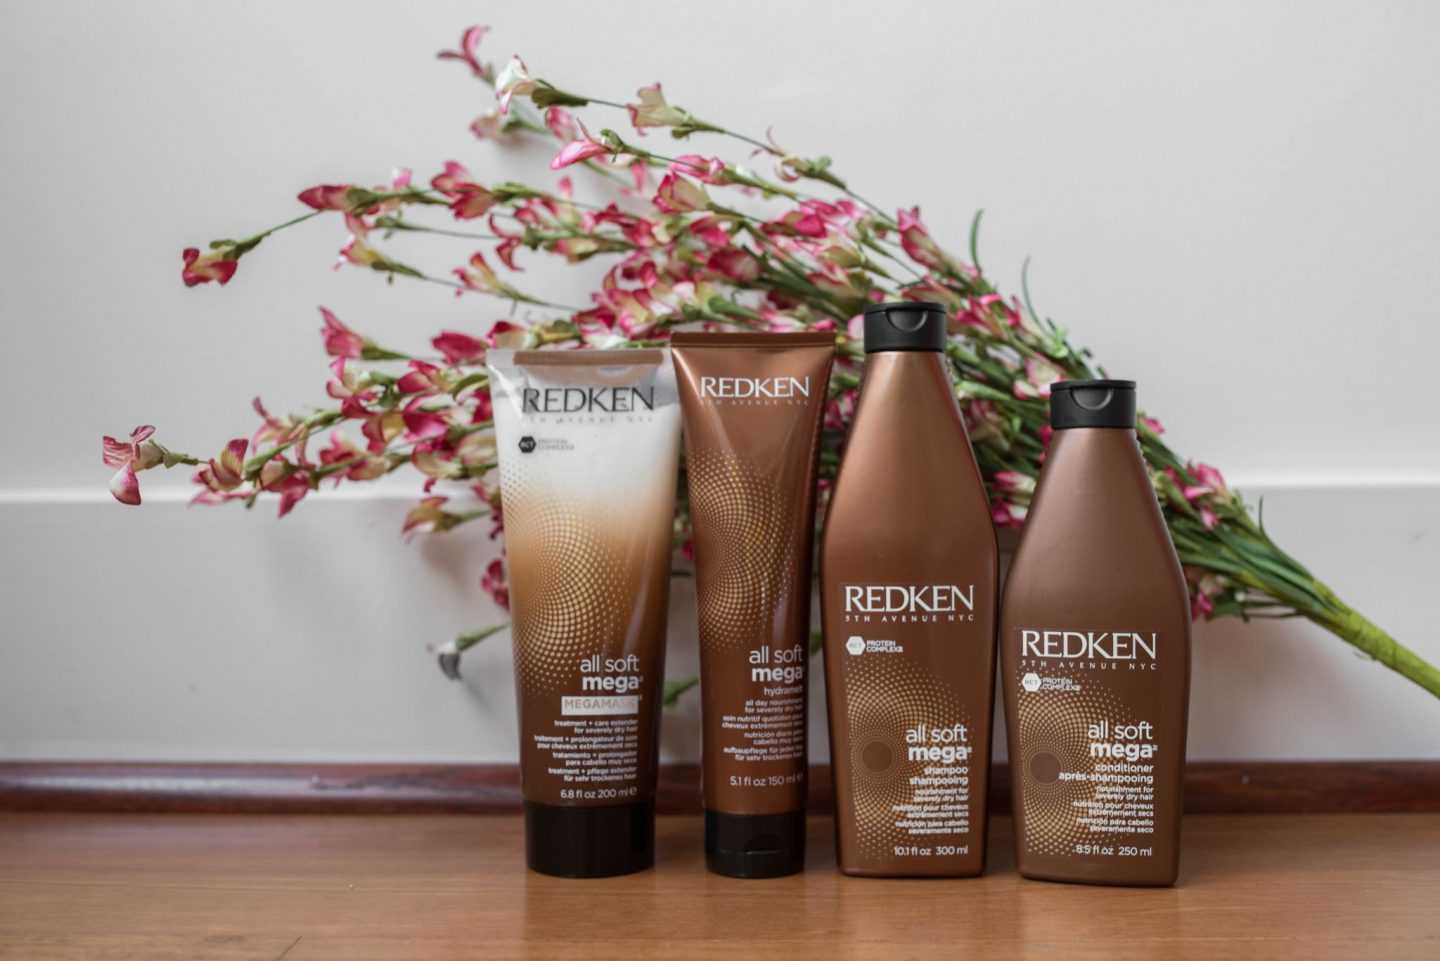 Redken All Soft Mega products